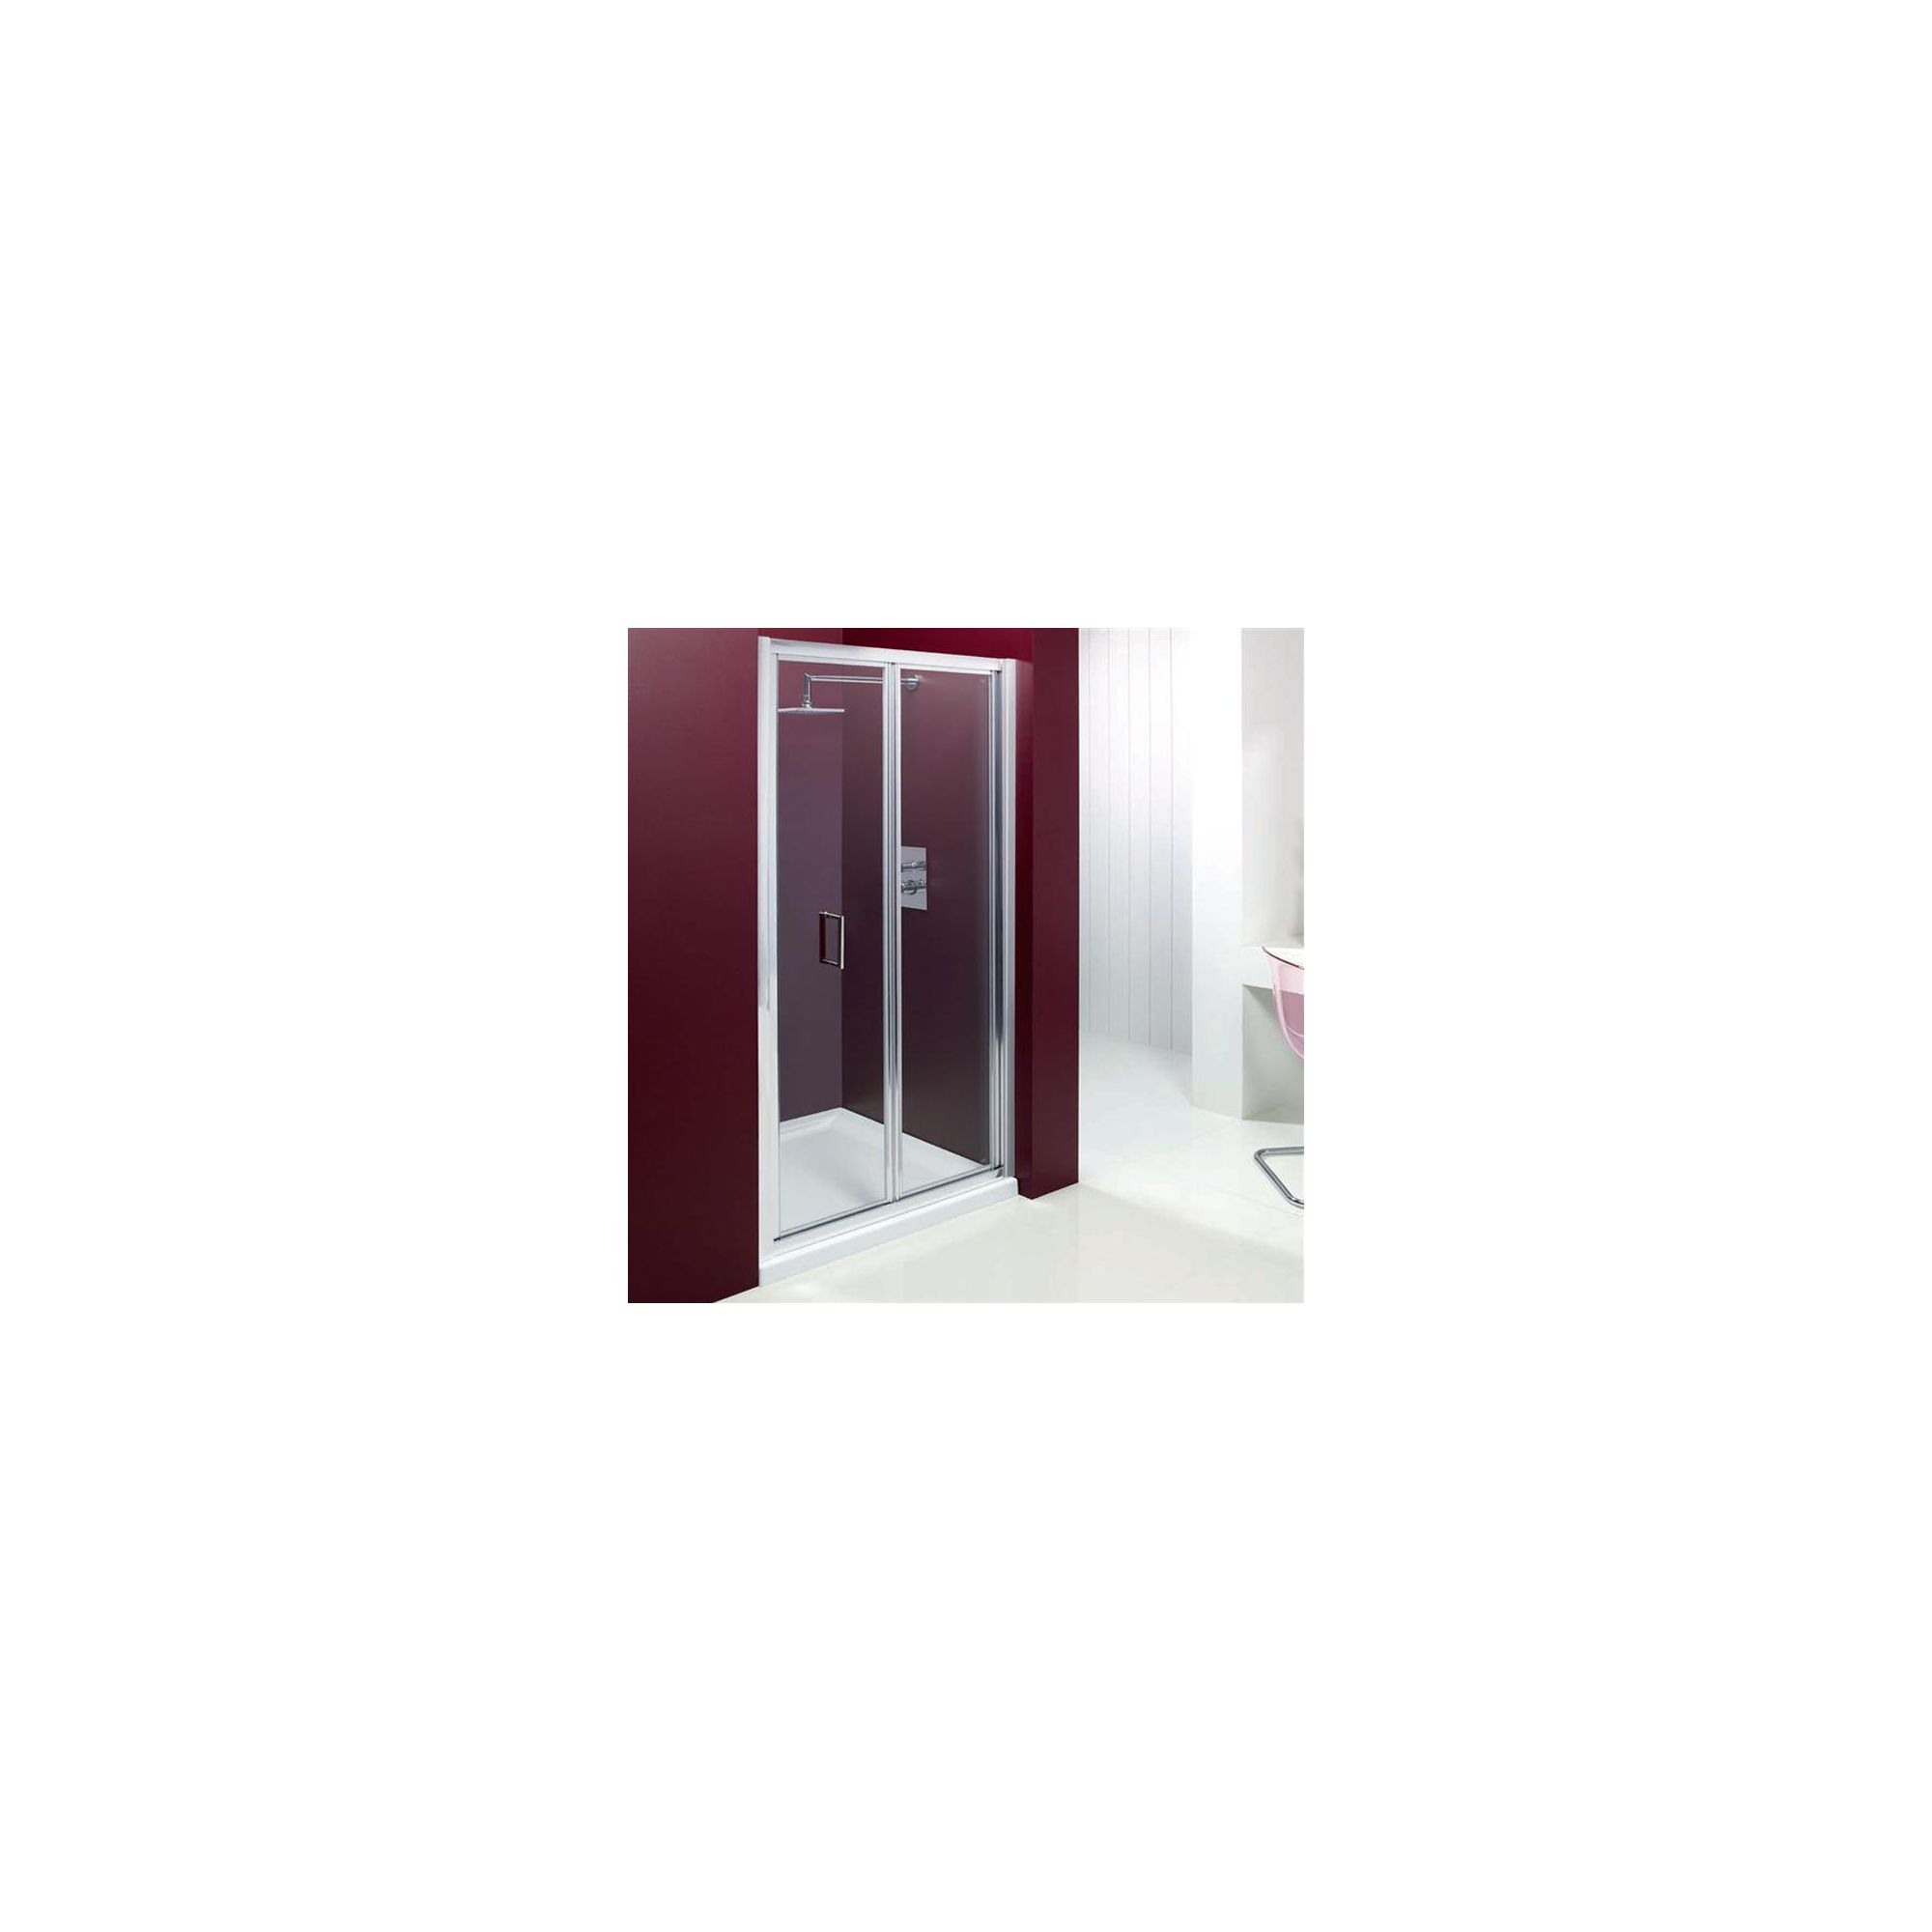 Merlyn Vivid Entree Bi-Fold Shower Door, 900mm Wide, 6mm Glass at Tesco Direct